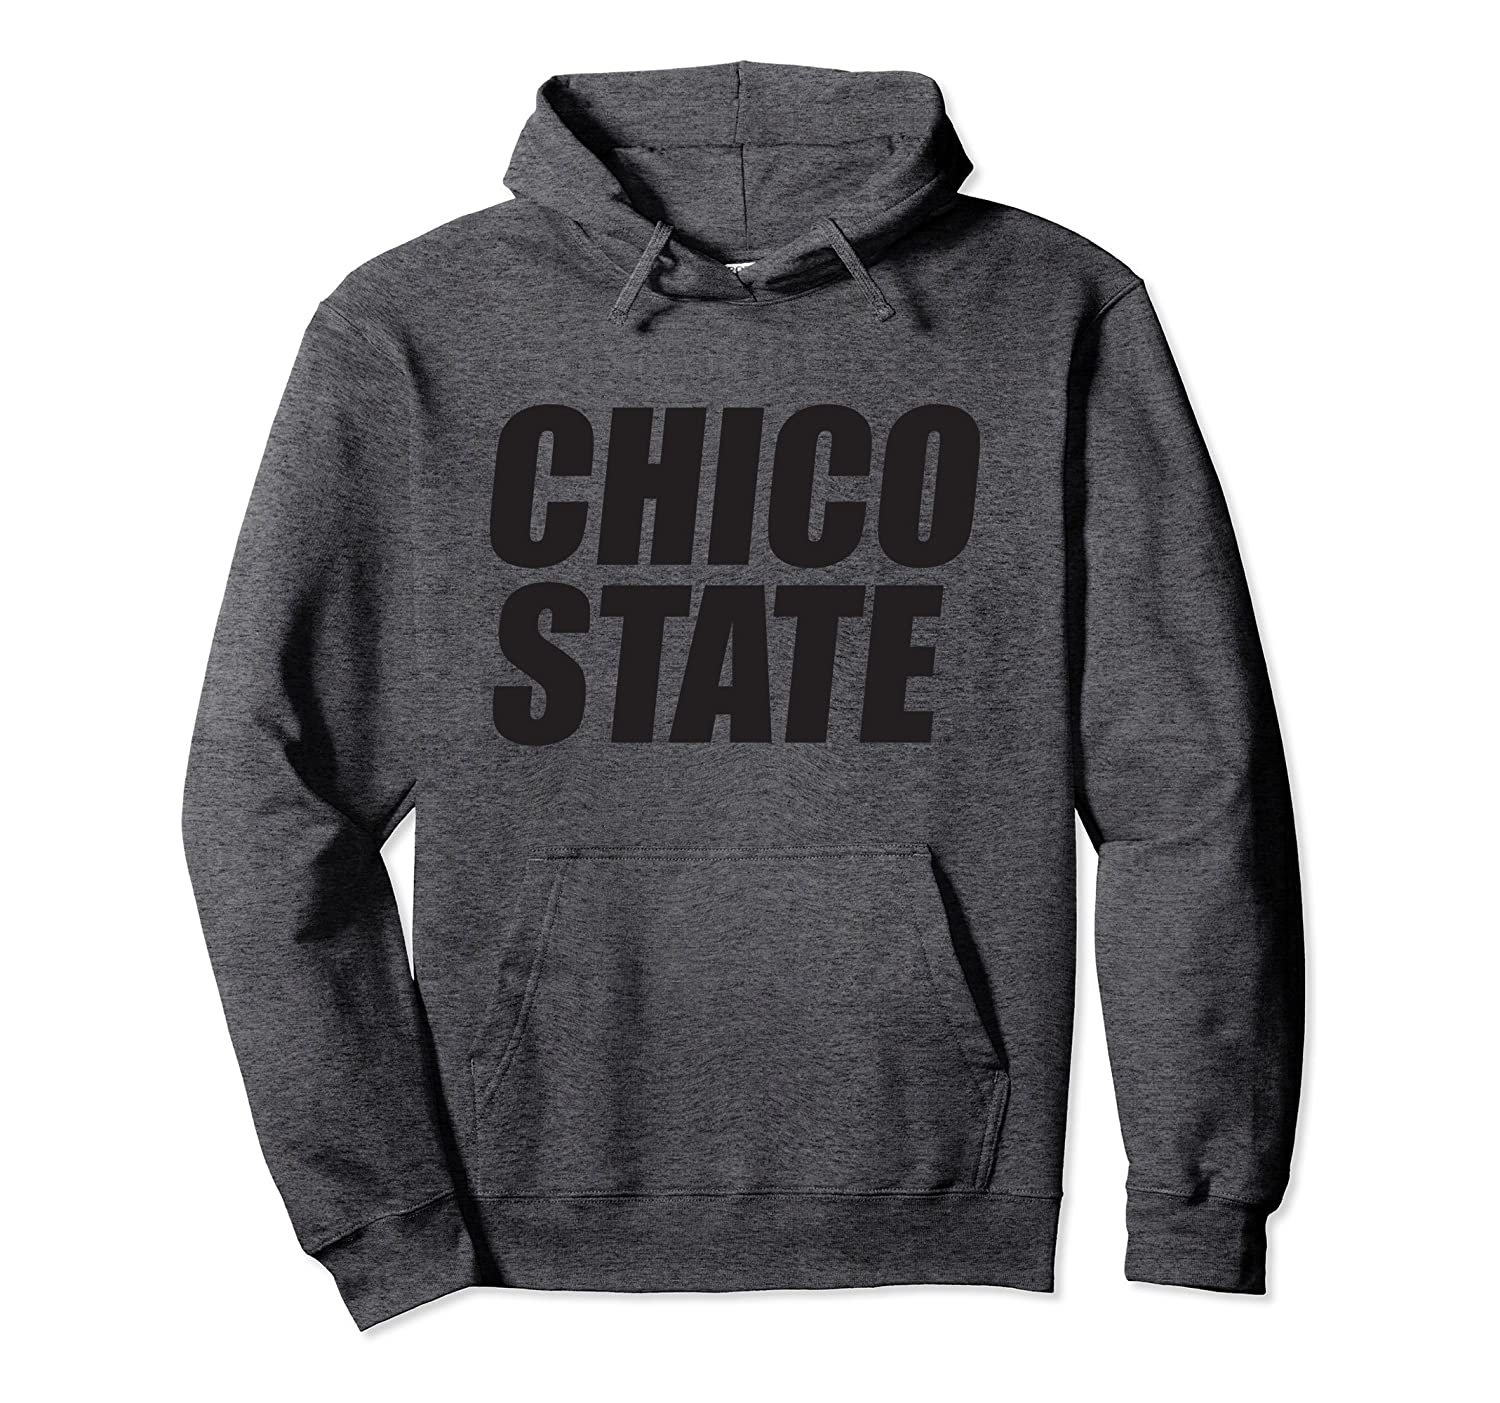 Chico State University Wildcats Hoodie 48csu-1-Colonhue